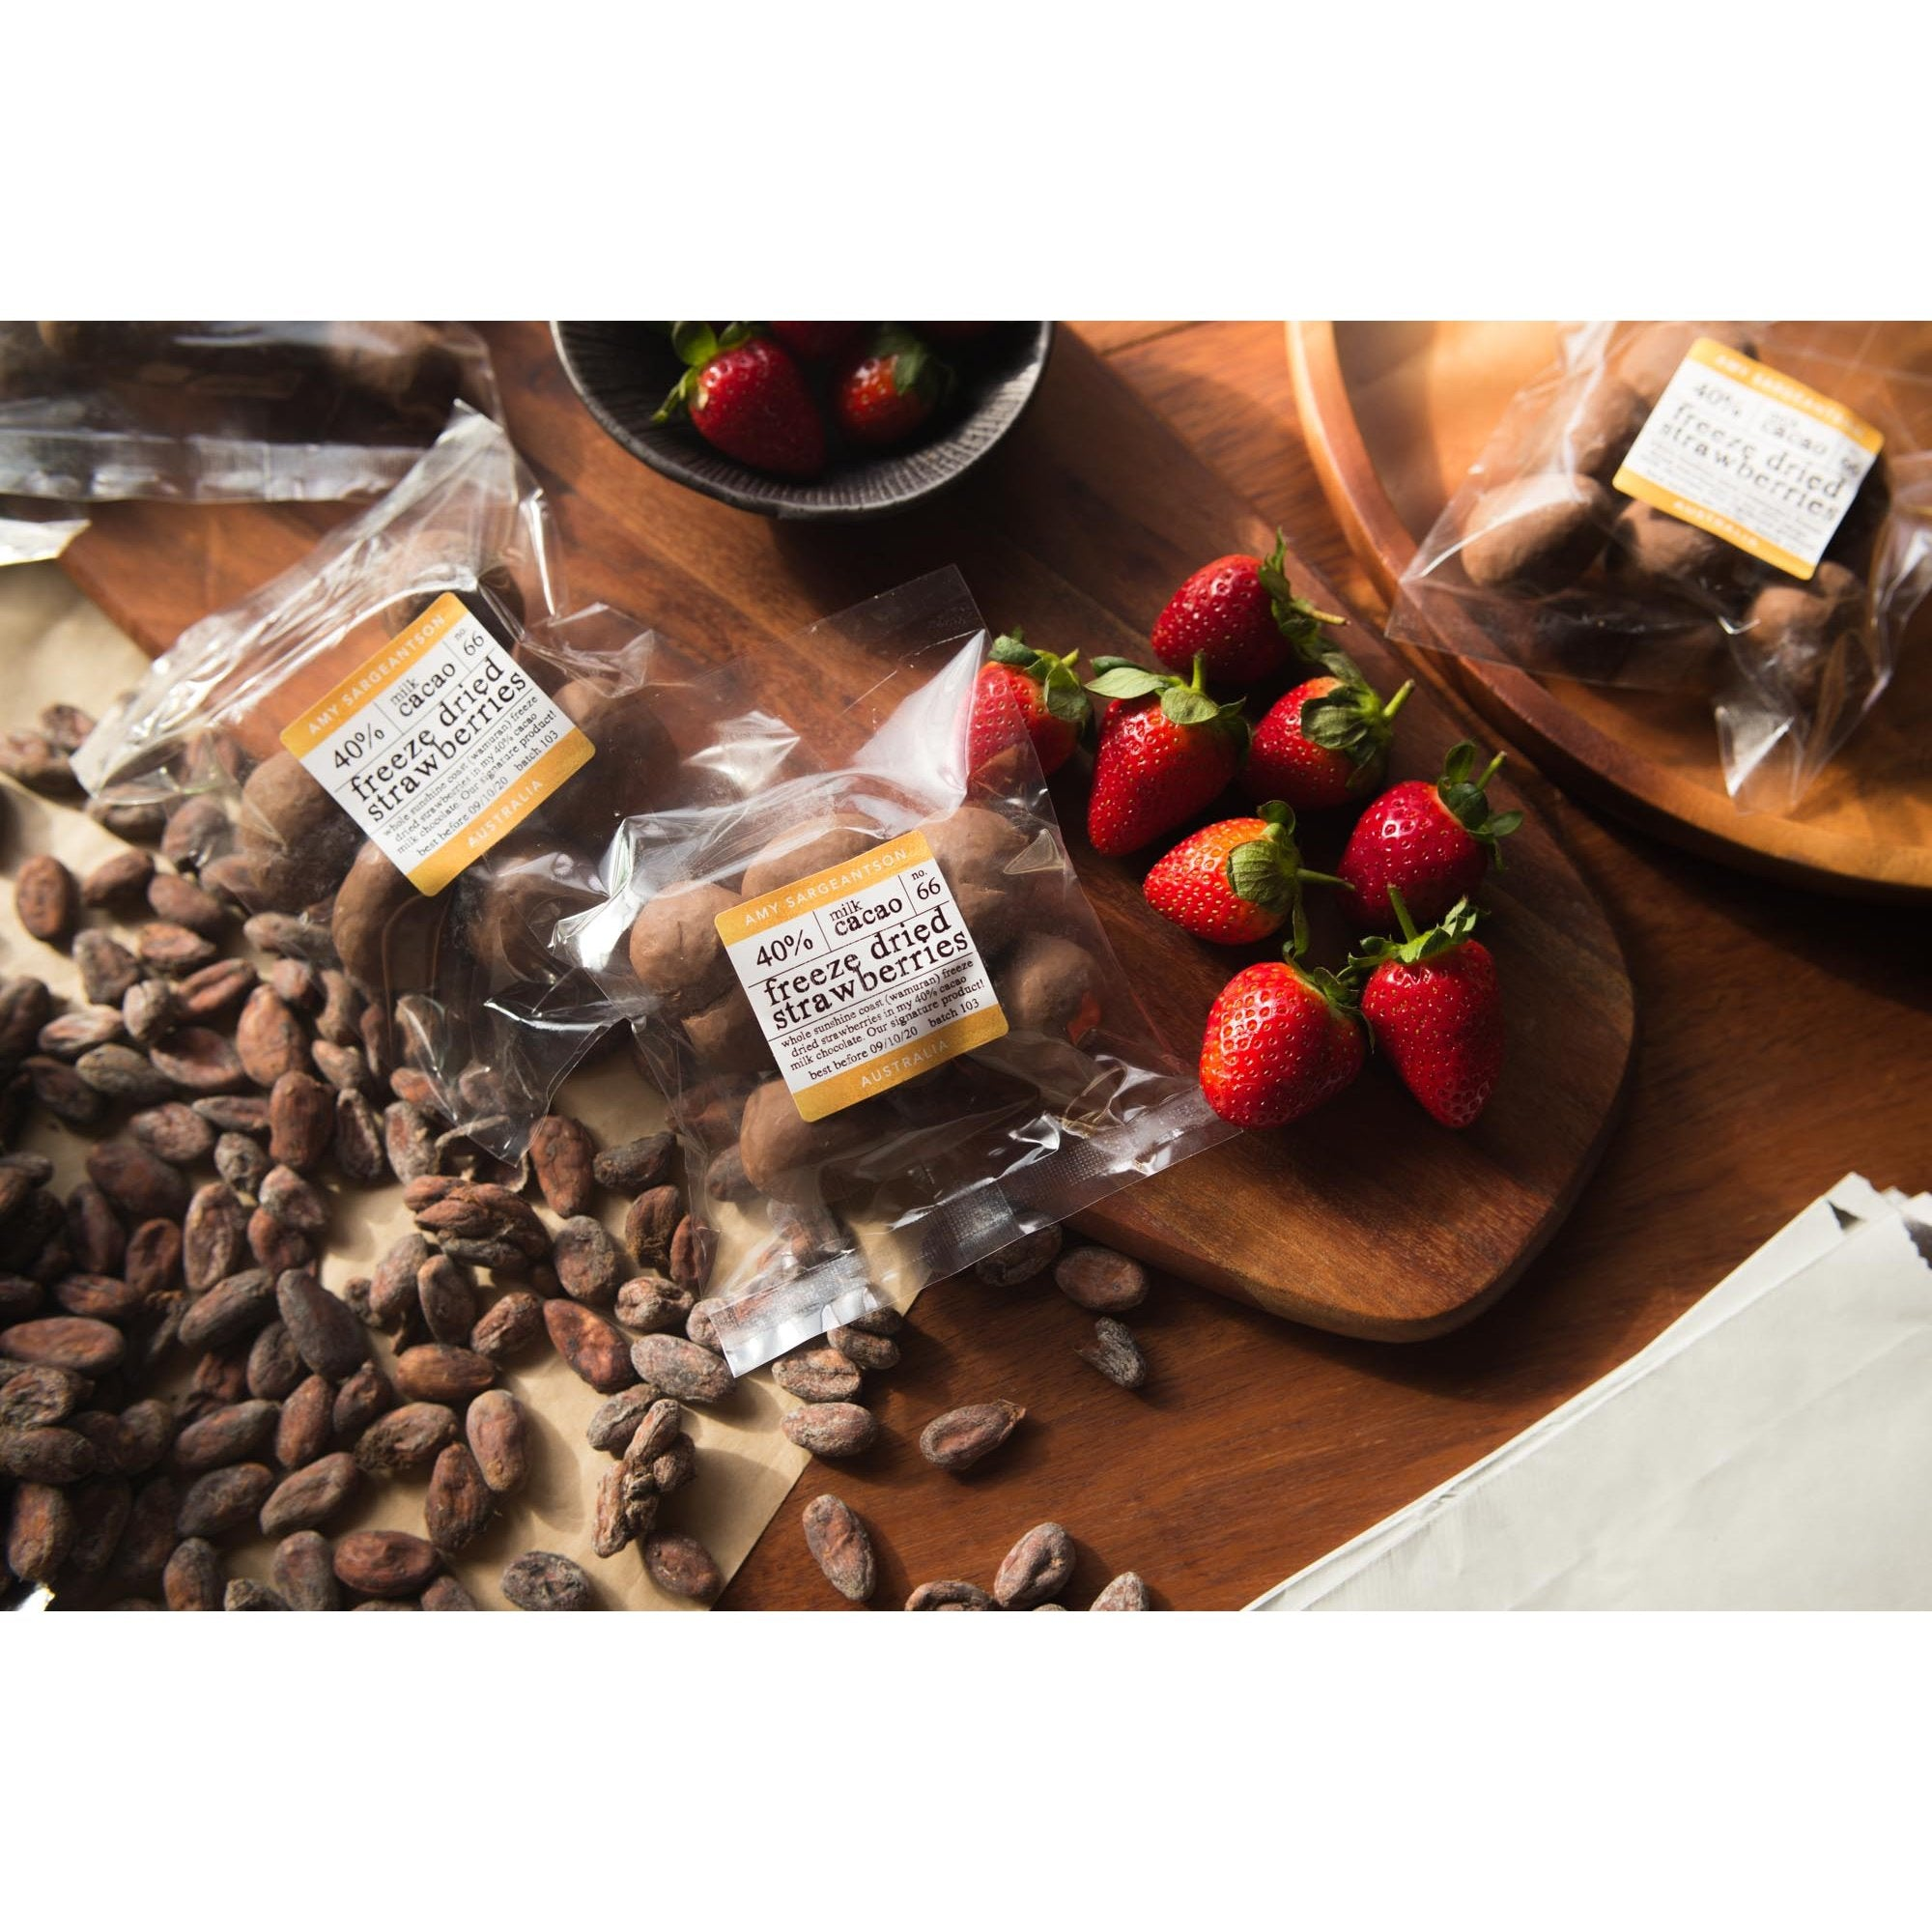 Sargeantson original Milk freeze dried strawberries - Amy Sargeantson